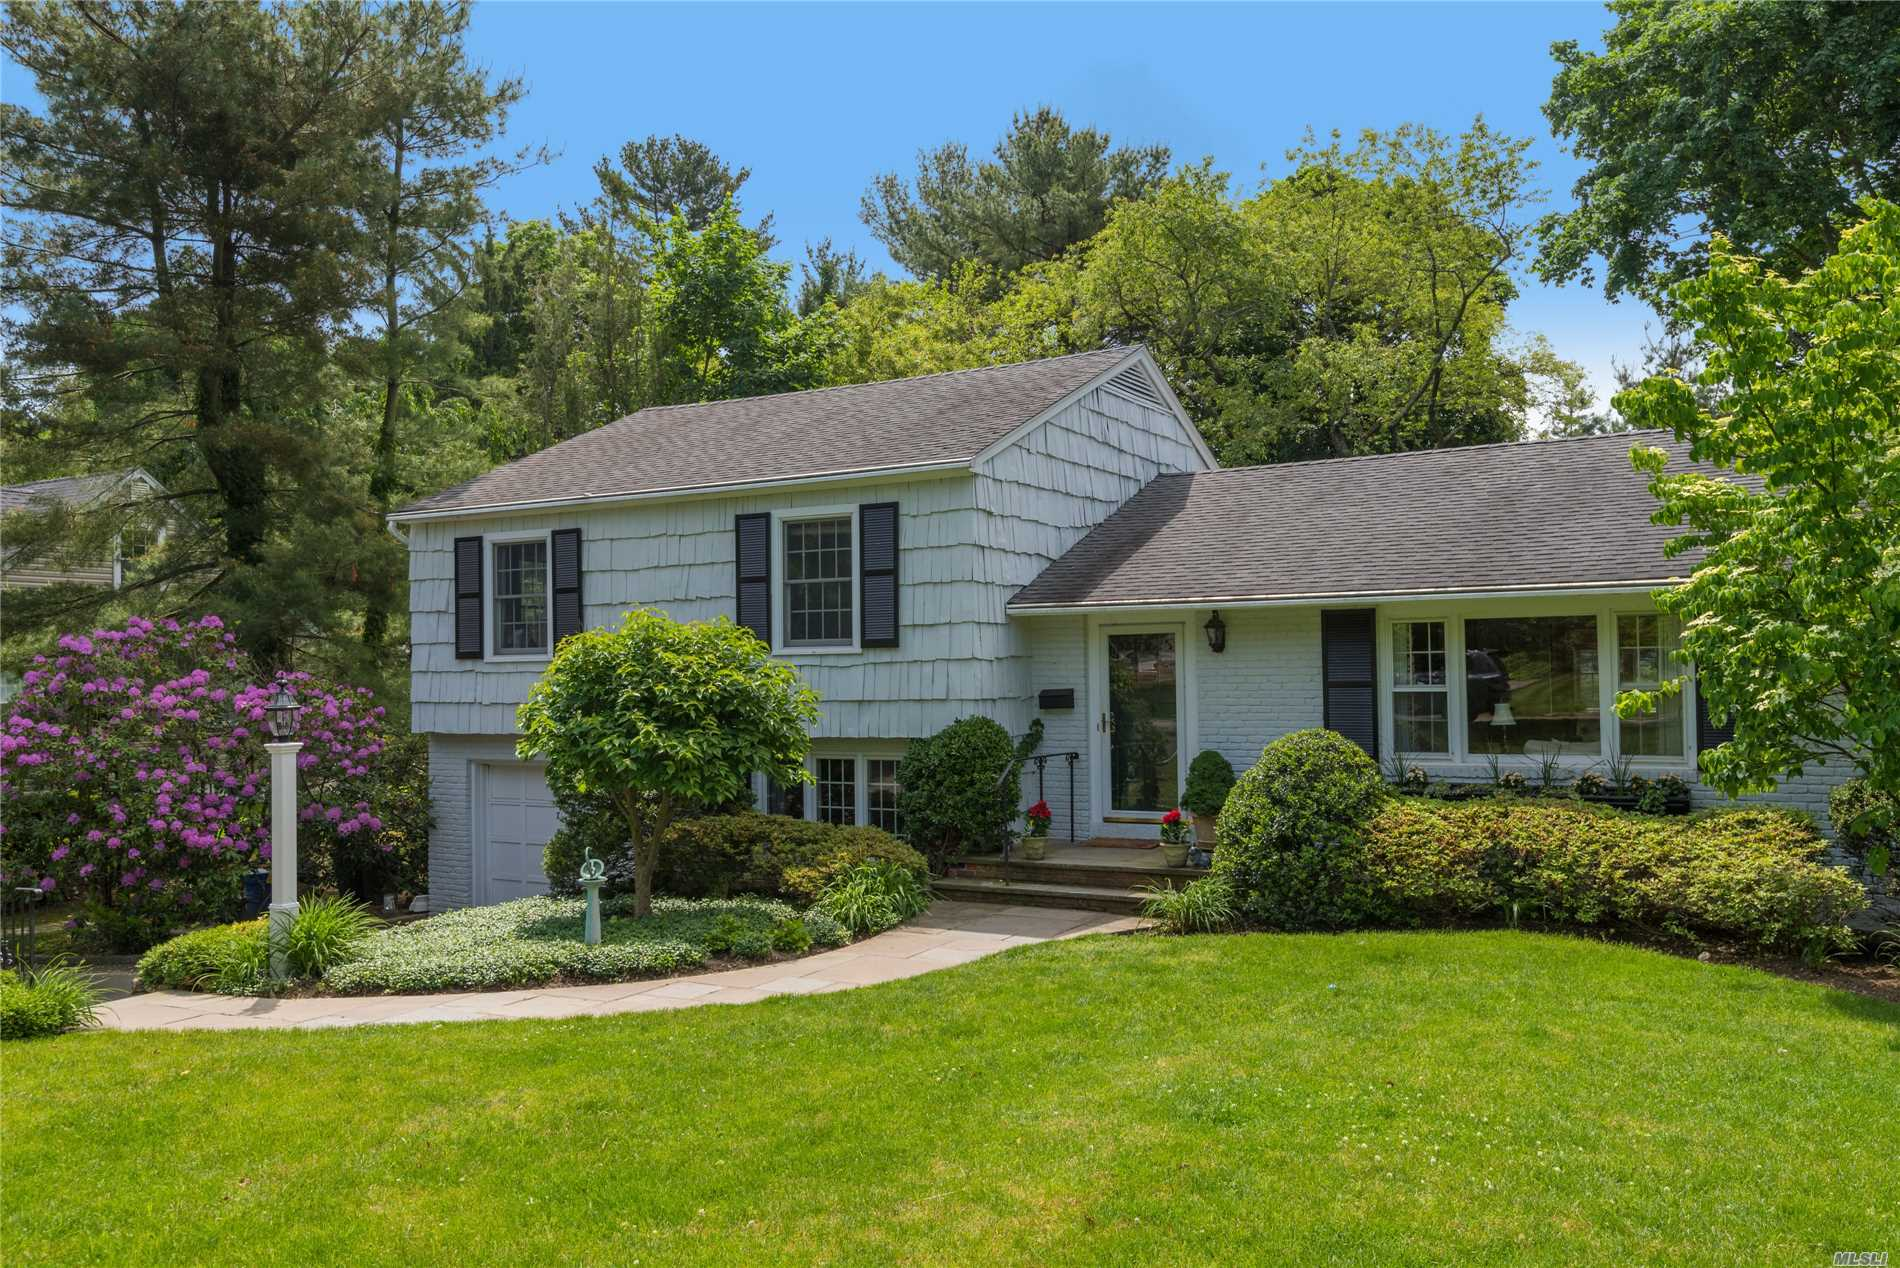 Located In The Heart Of Locust Valley, This Beautifully Updated Home Has A Bright Spacious Open Floor Plan. Updated Kitchen, New Family Rm & Deck Overlooking A Bucolic Backyard W Brick Patio. Close To Shops, Restaurants, Special Boys & Girls Club & Lirr. Village Of Lattingtown Includes Golf ( W Fee) & Private Beach Rights.